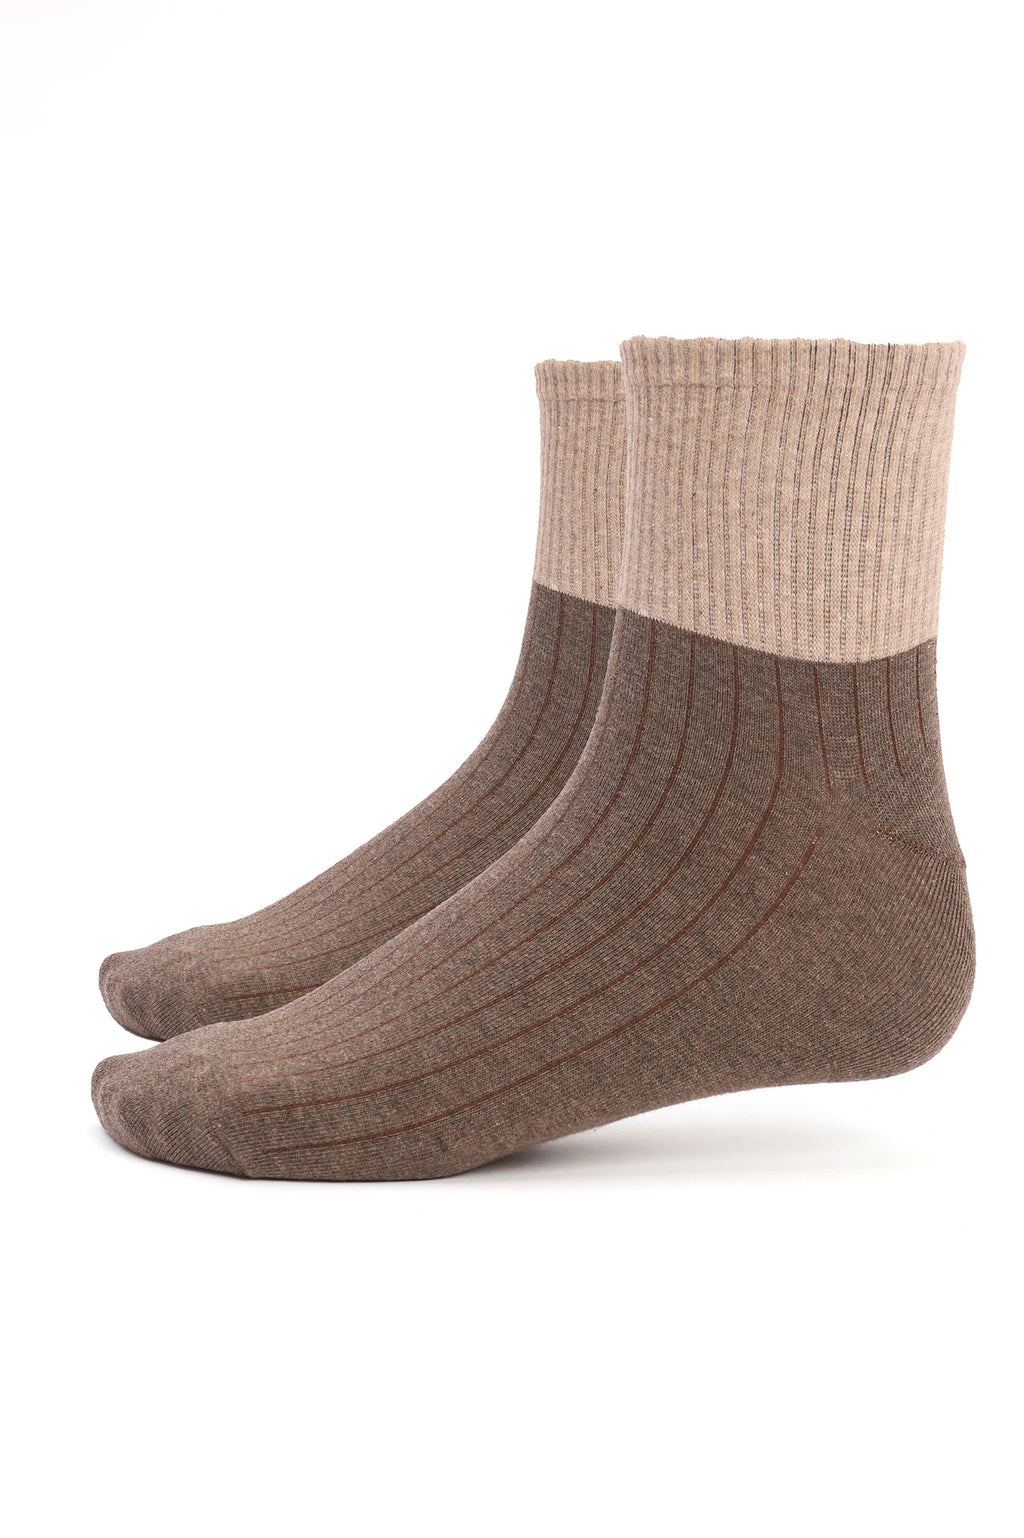 RIBBED SOCKS -BEIGE